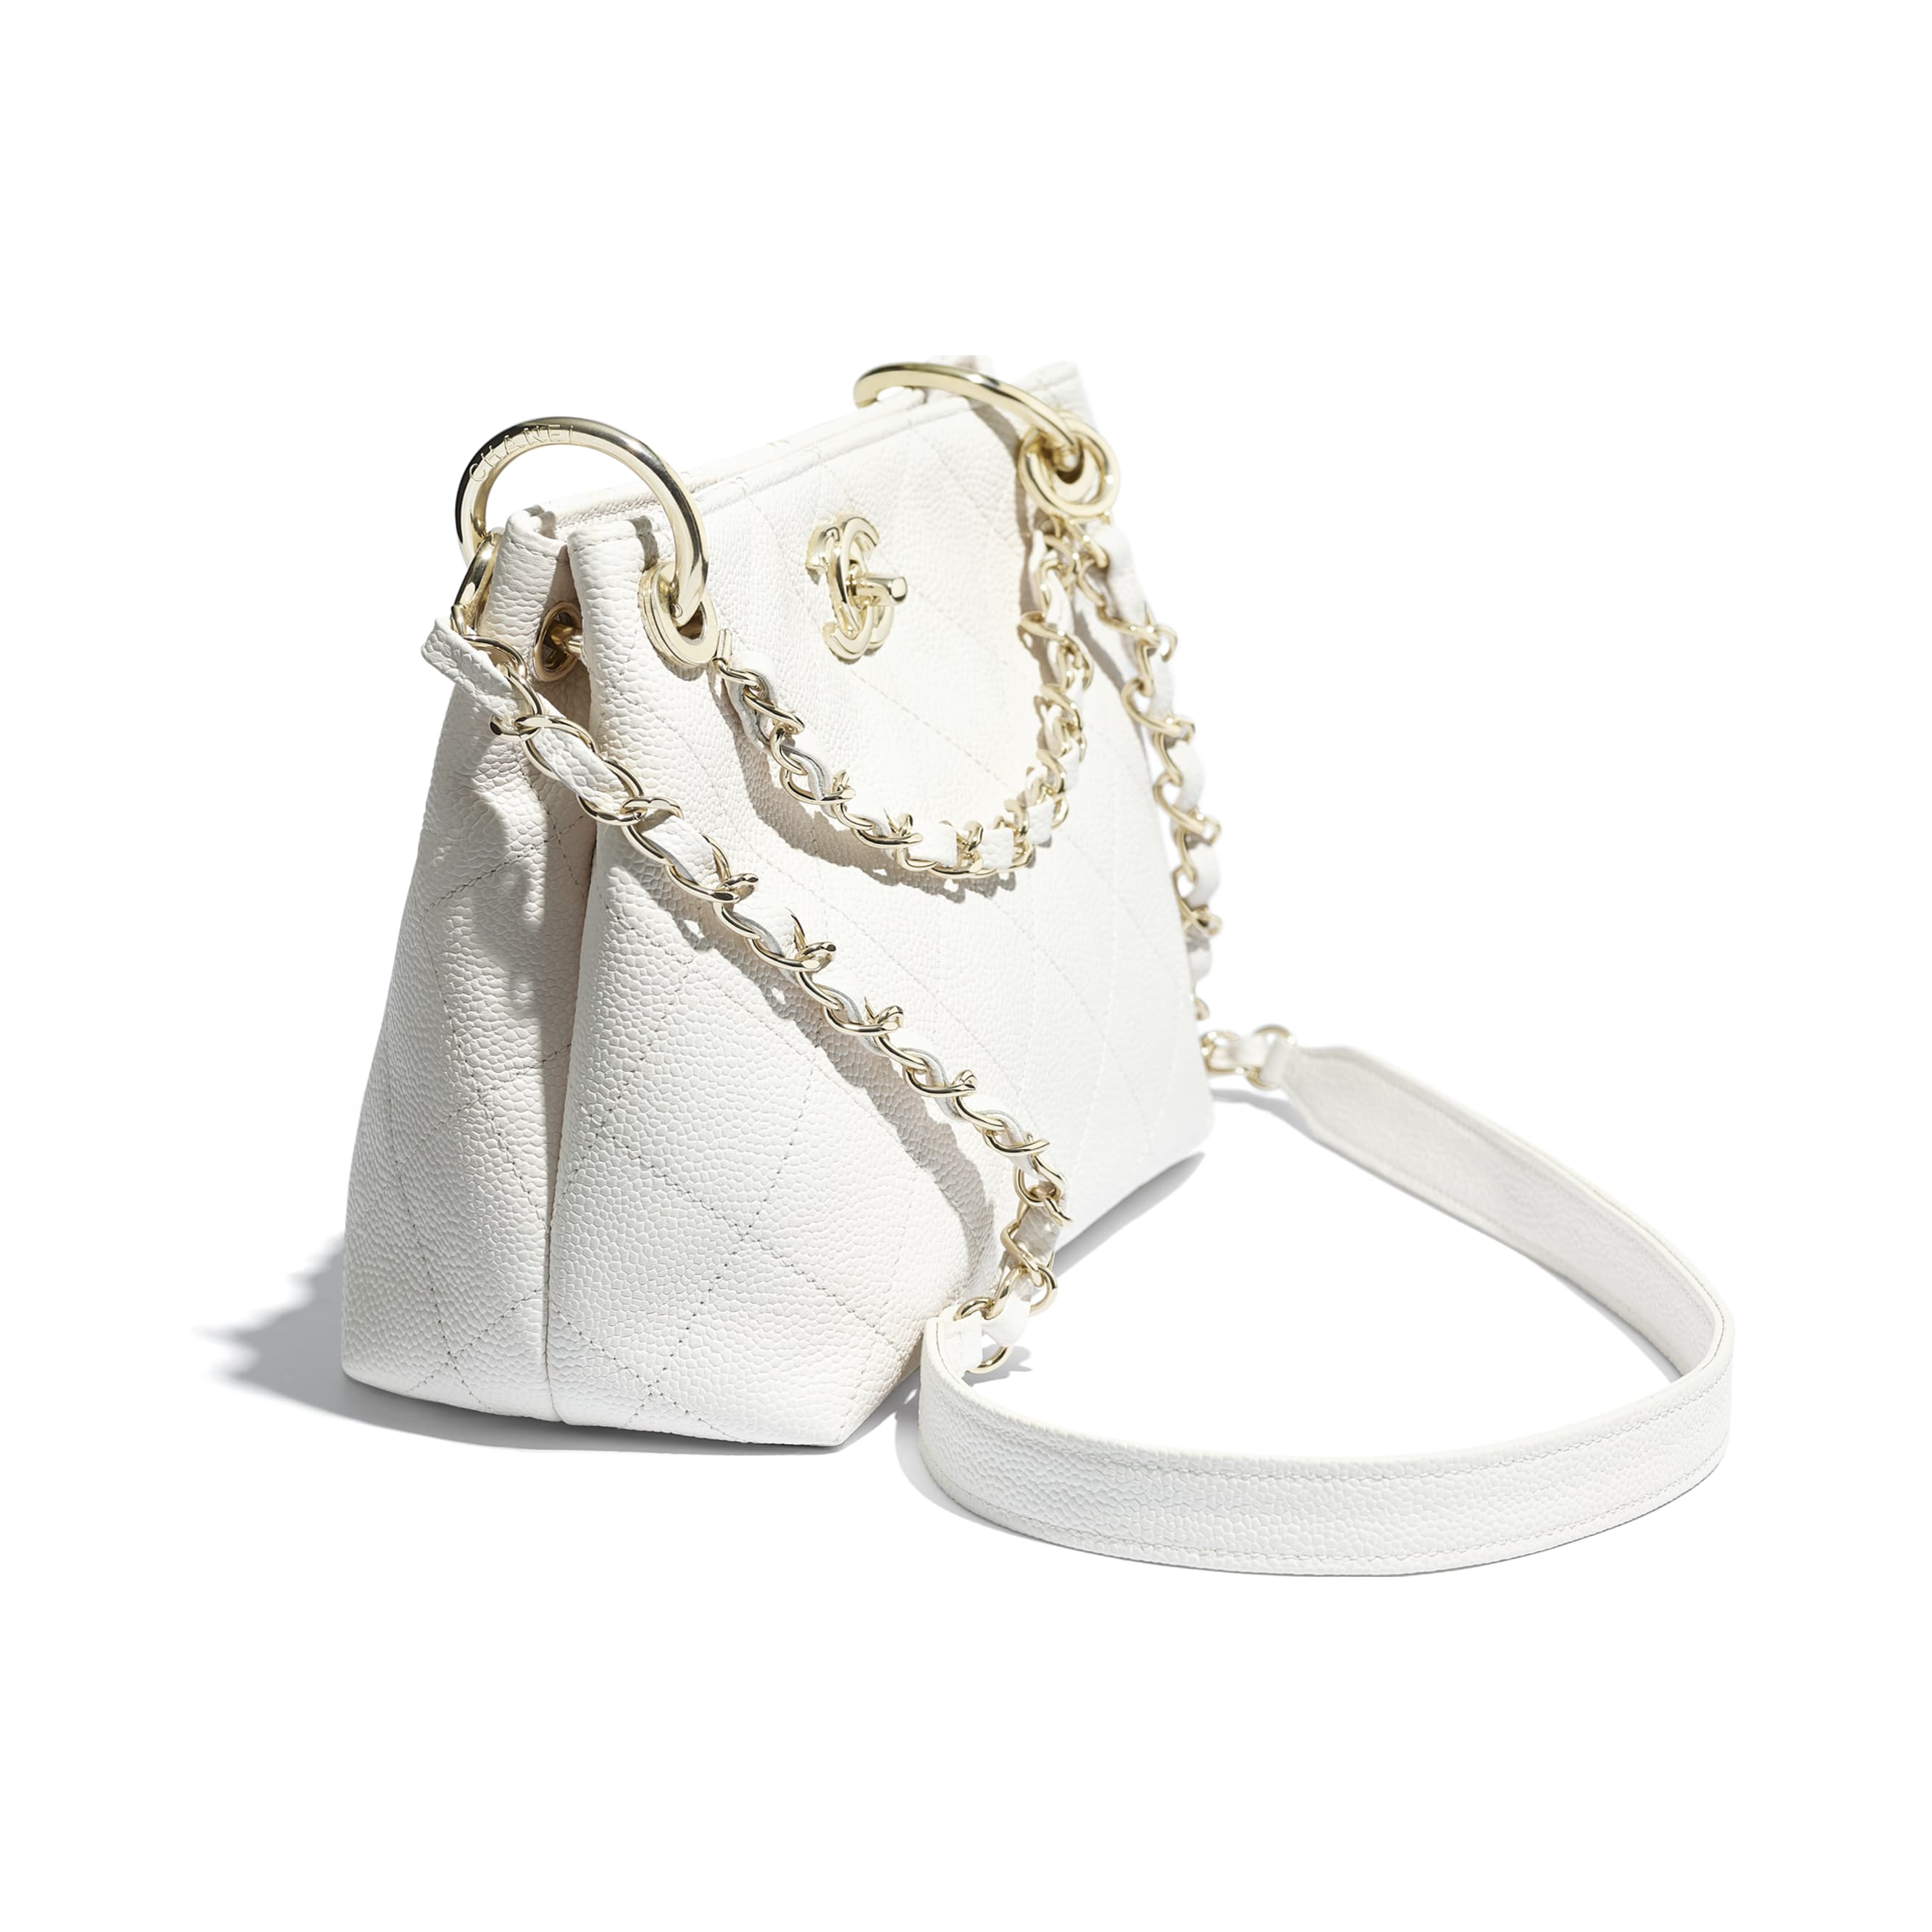 Small Hobo Bag - White - Grained Calfskin & Gold-Tone Metal - CHANEL - Extra view - see standard sized version